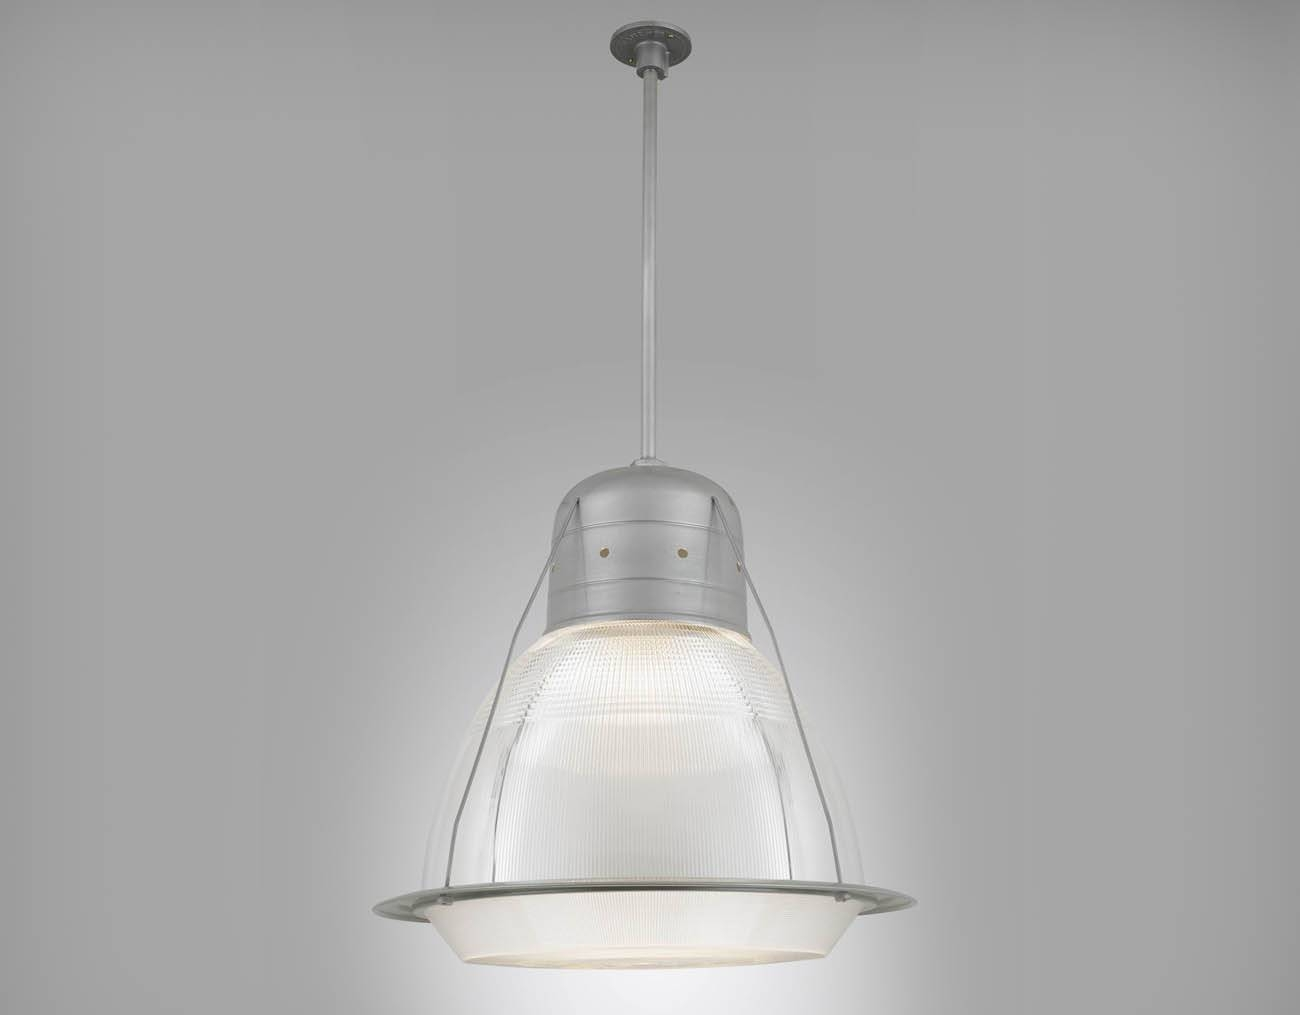 Fresh Commercial Pendant Light Fixtures 82 About Remodel Led Mini Regarding Commercial Pendant Lights (View 10 of 15)